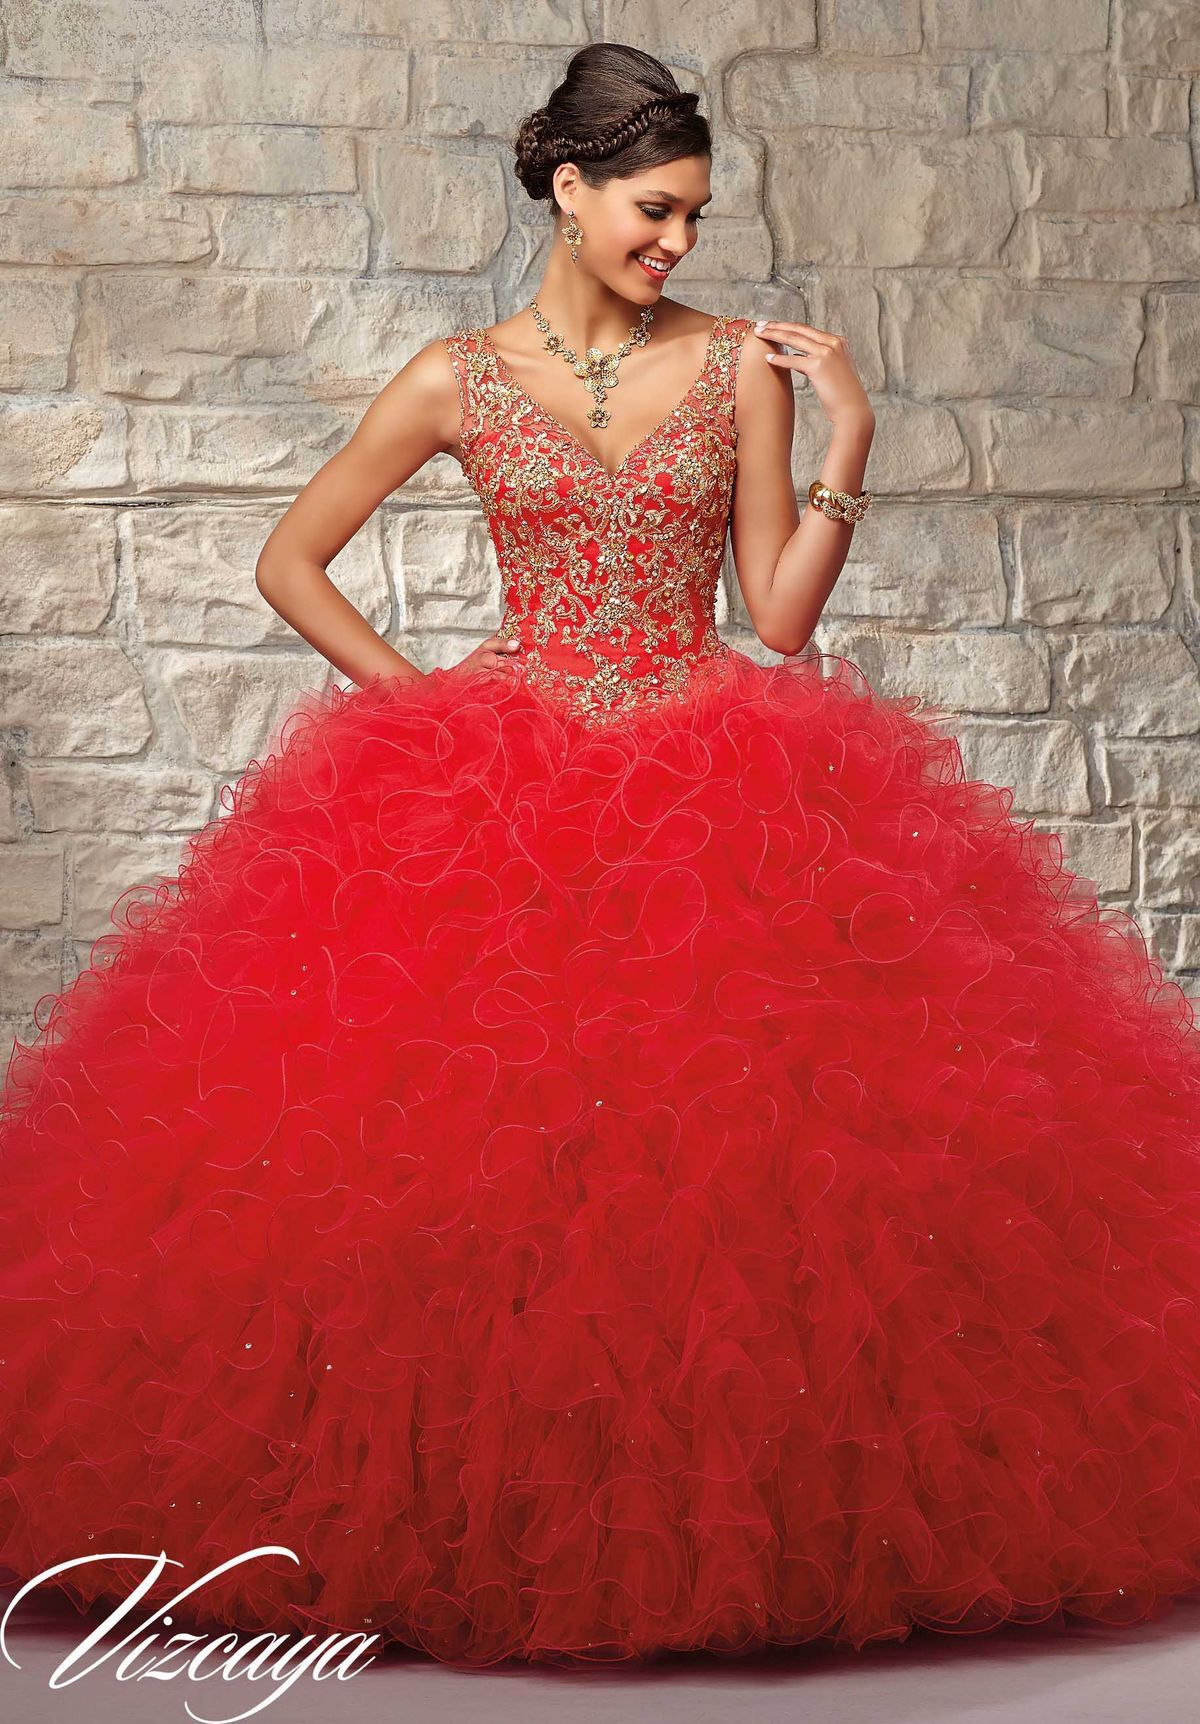 Red with gold dress dresses quinceanera pinterest gold